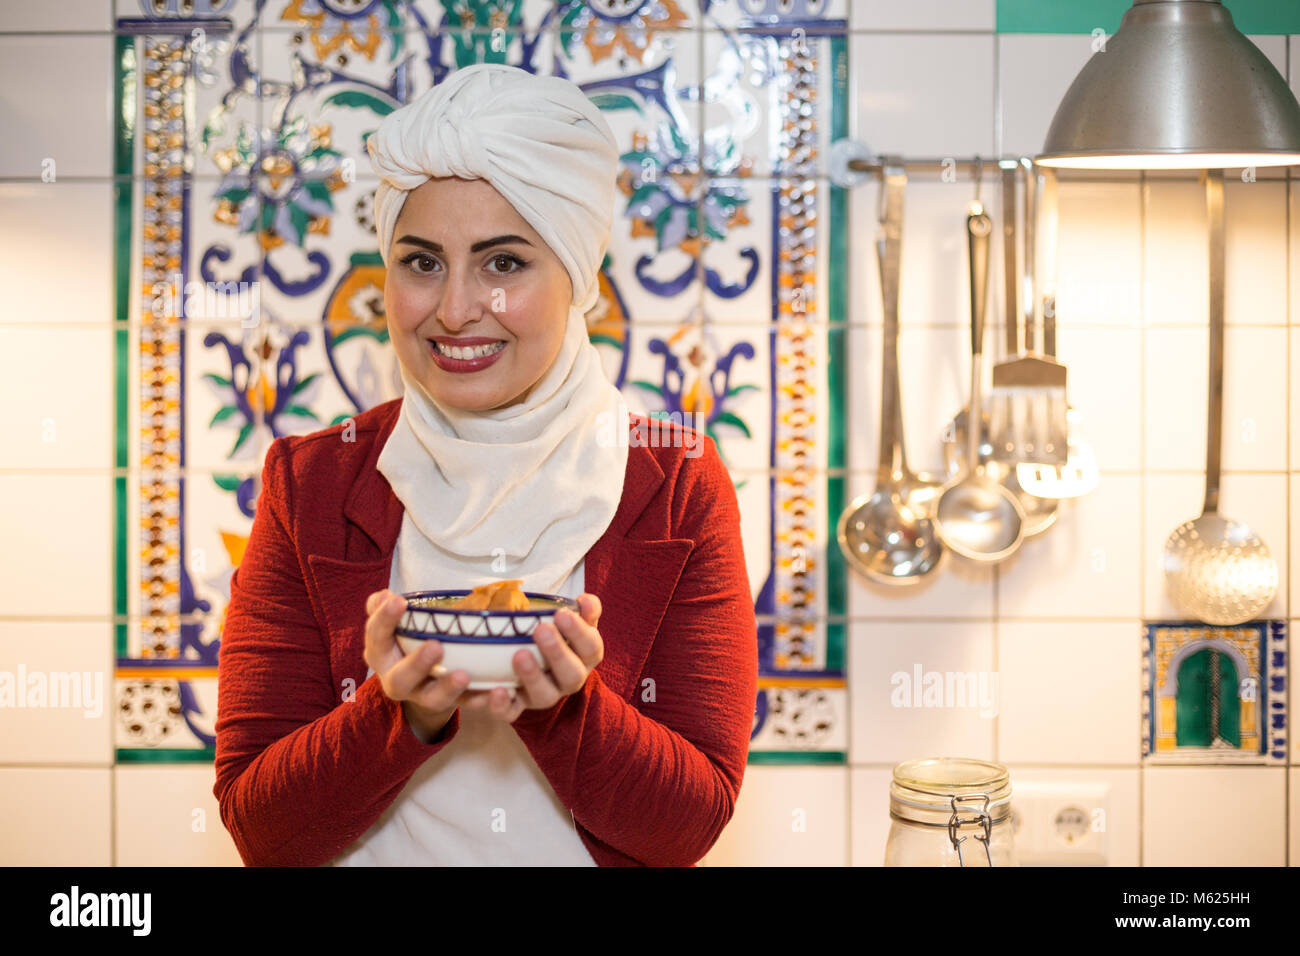 Malakeh Jazmati, Syrian TV-Star of a Cooking Show, cookbook author, refugee, living in exile in Berlin, Germany. Stock Photo